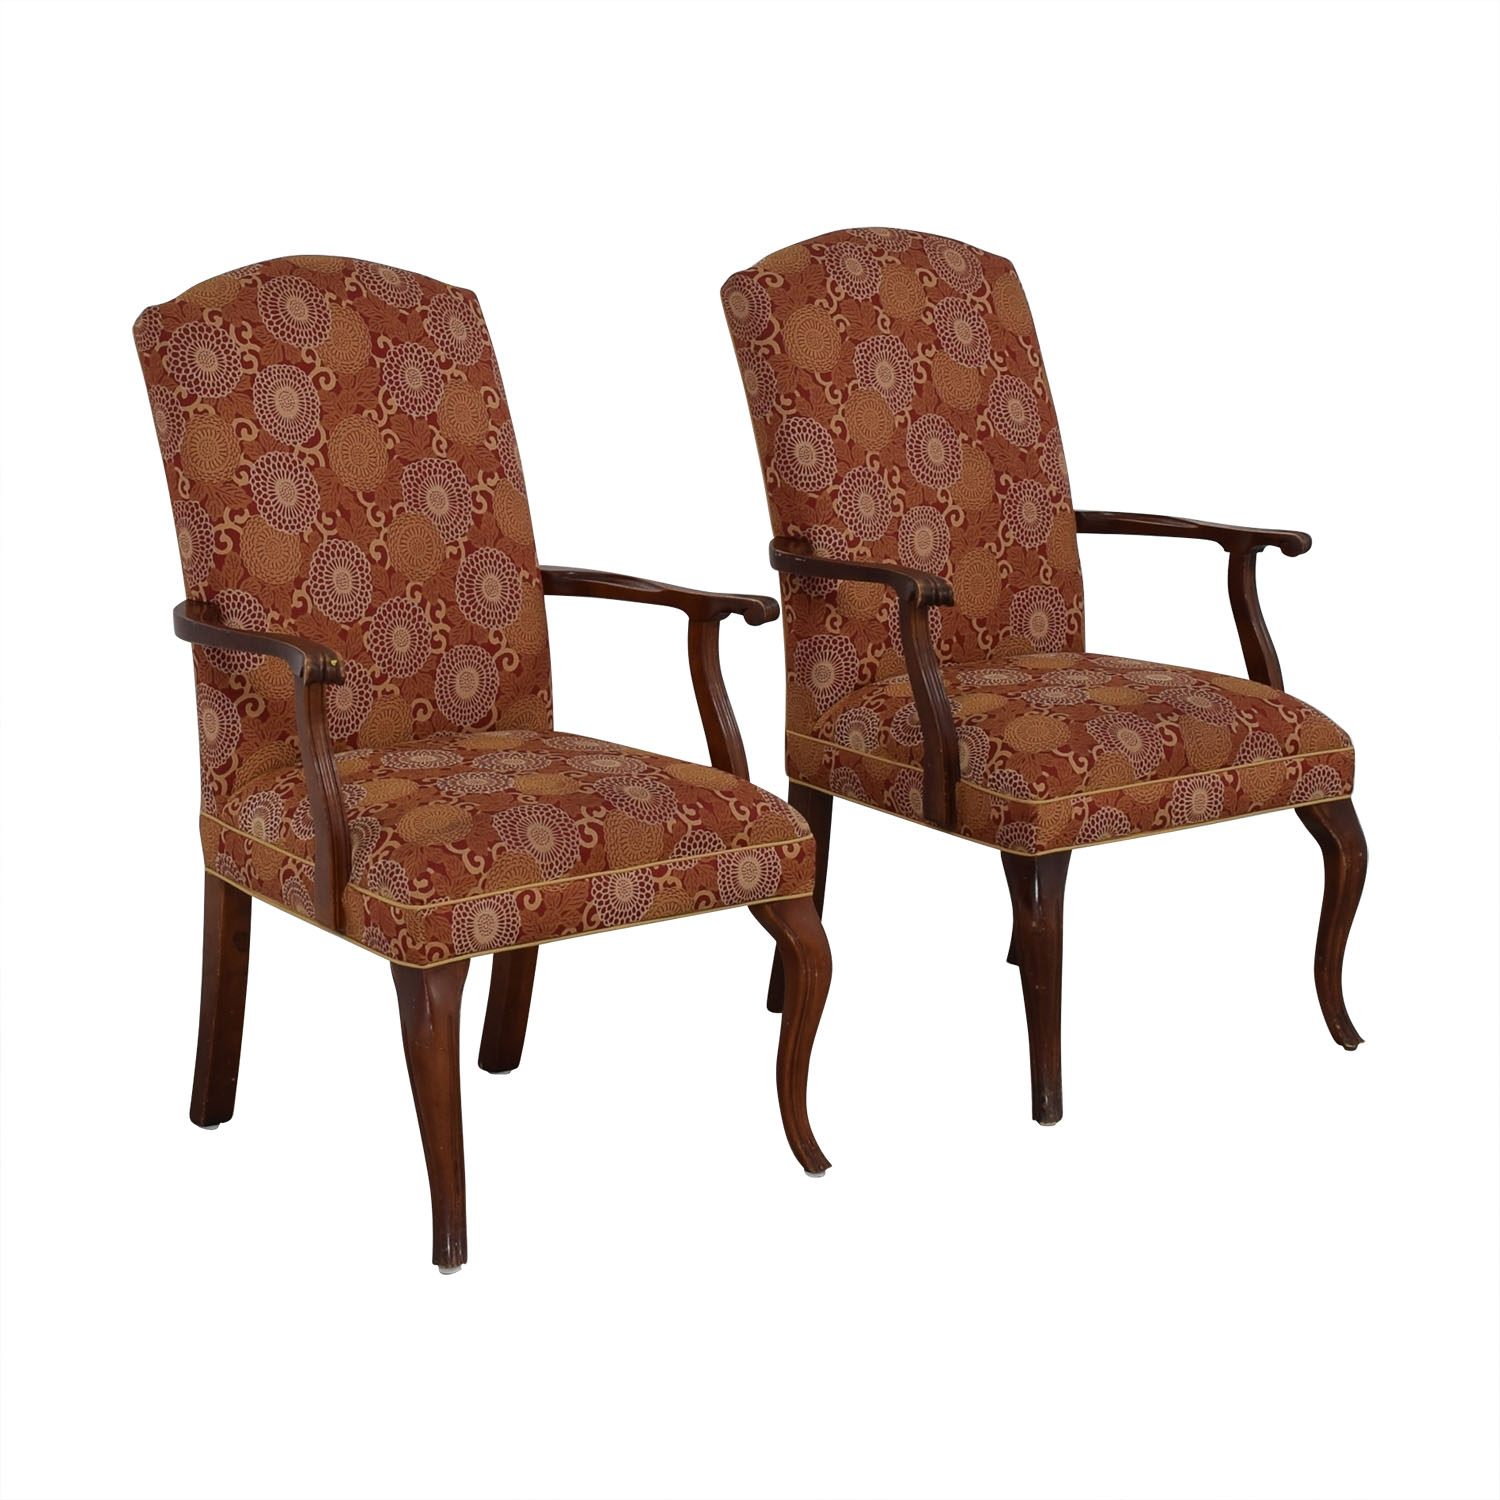 shop Ethan Allen Patterned Armchairs Ethan Allen Chairs